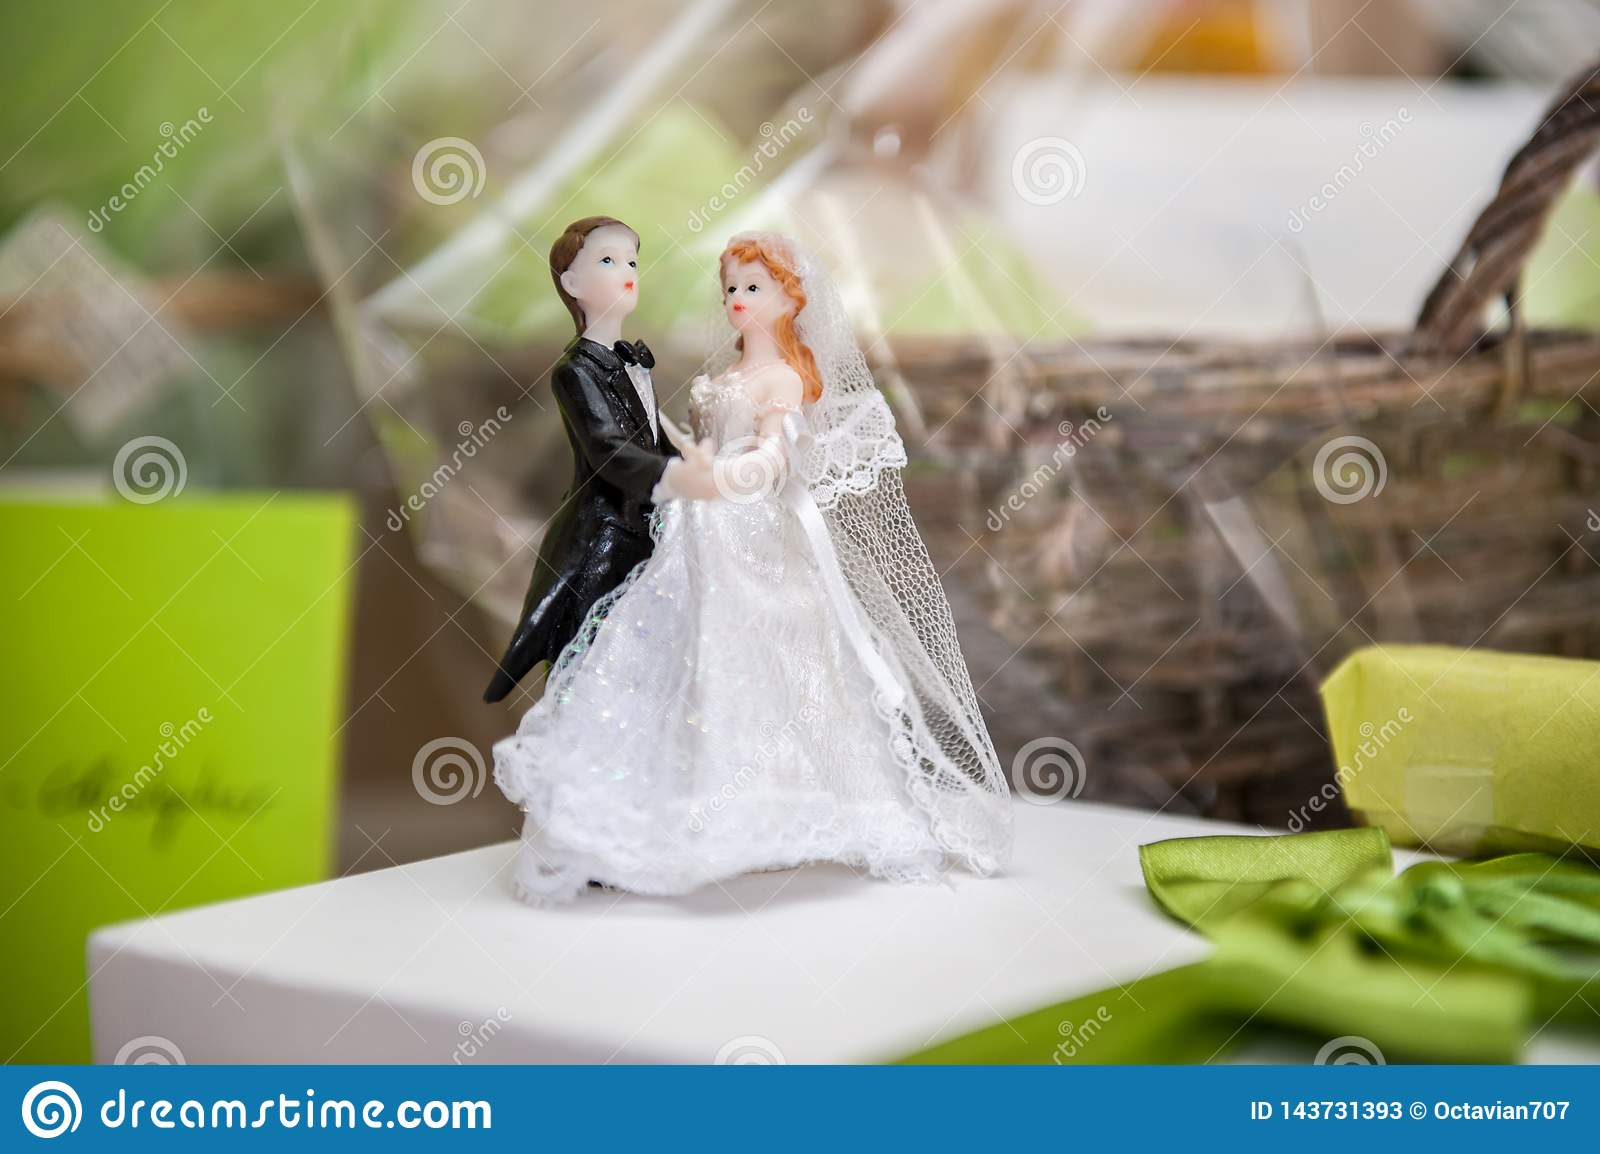 Bride and groom made of sugar on top of wedding cake